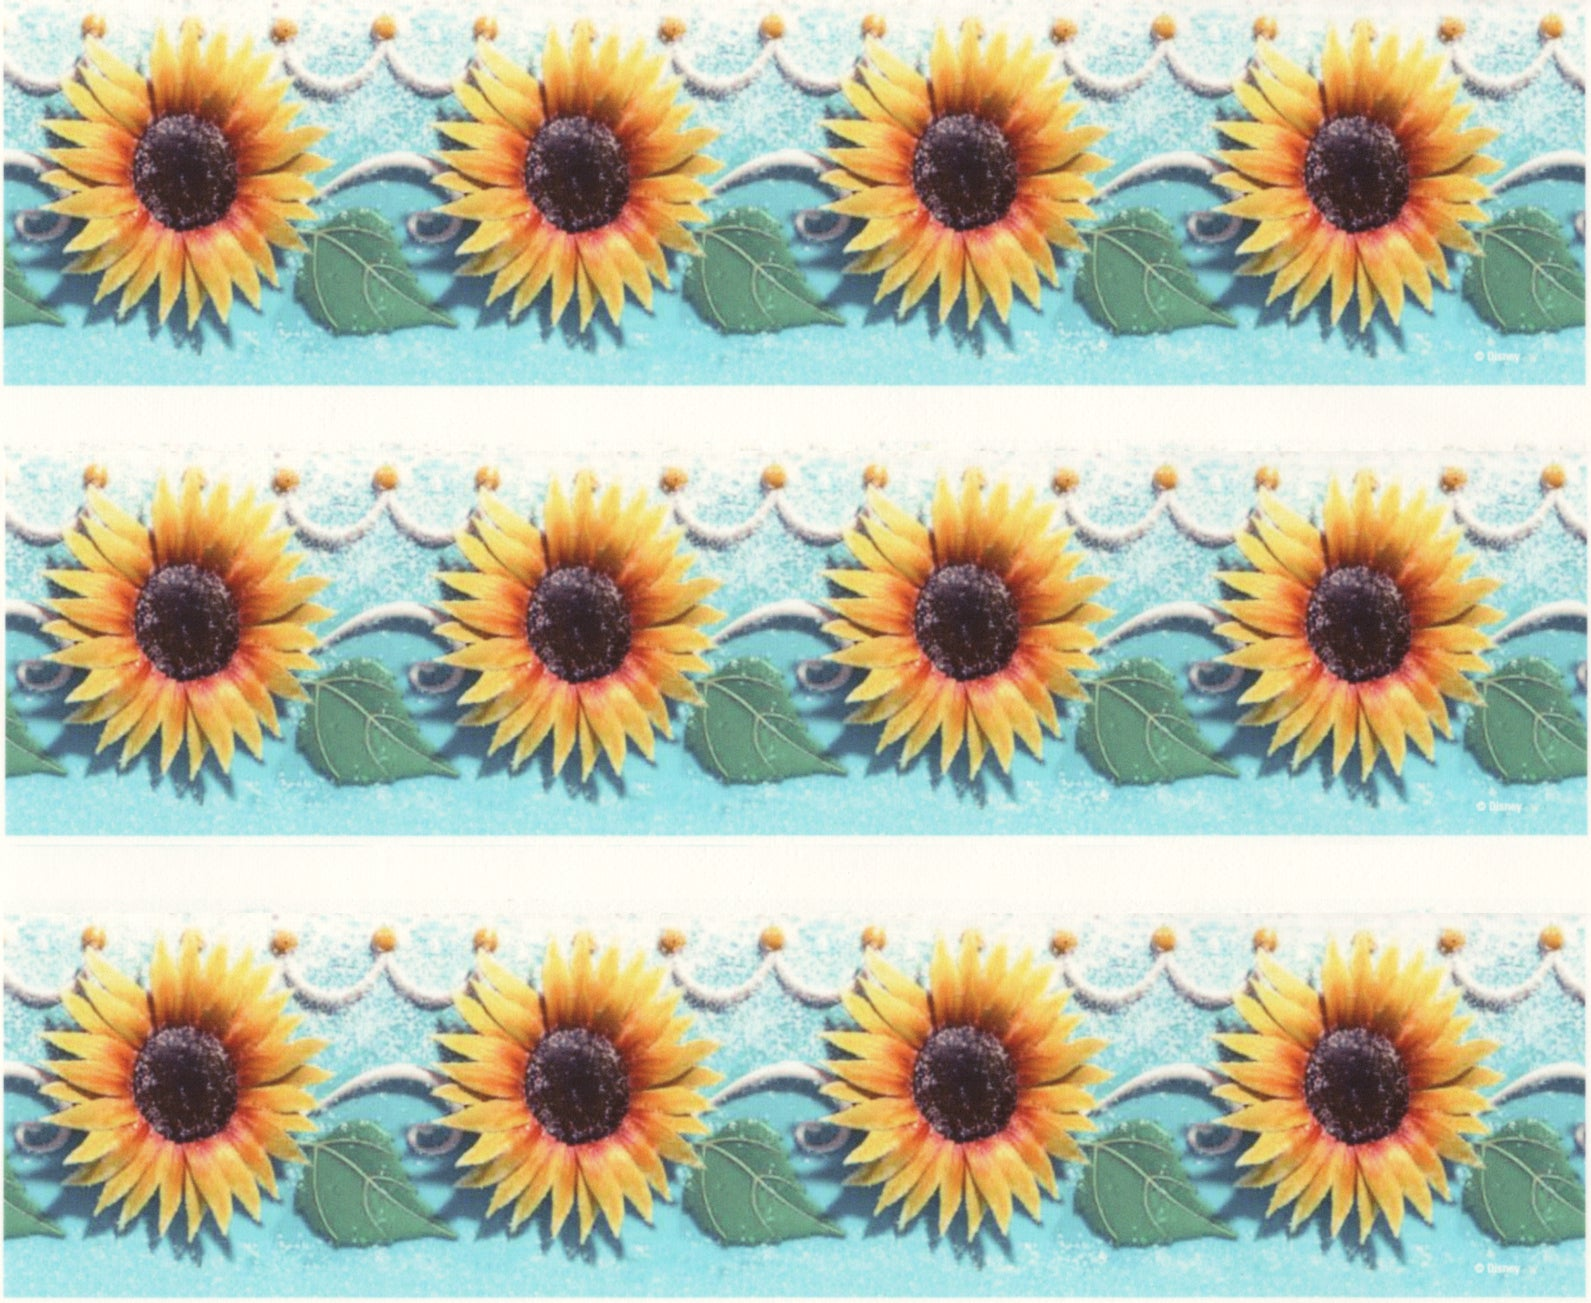 Yellow Sunflowers Green Leaves Edible Cake Topper Image Strips ABPID03798